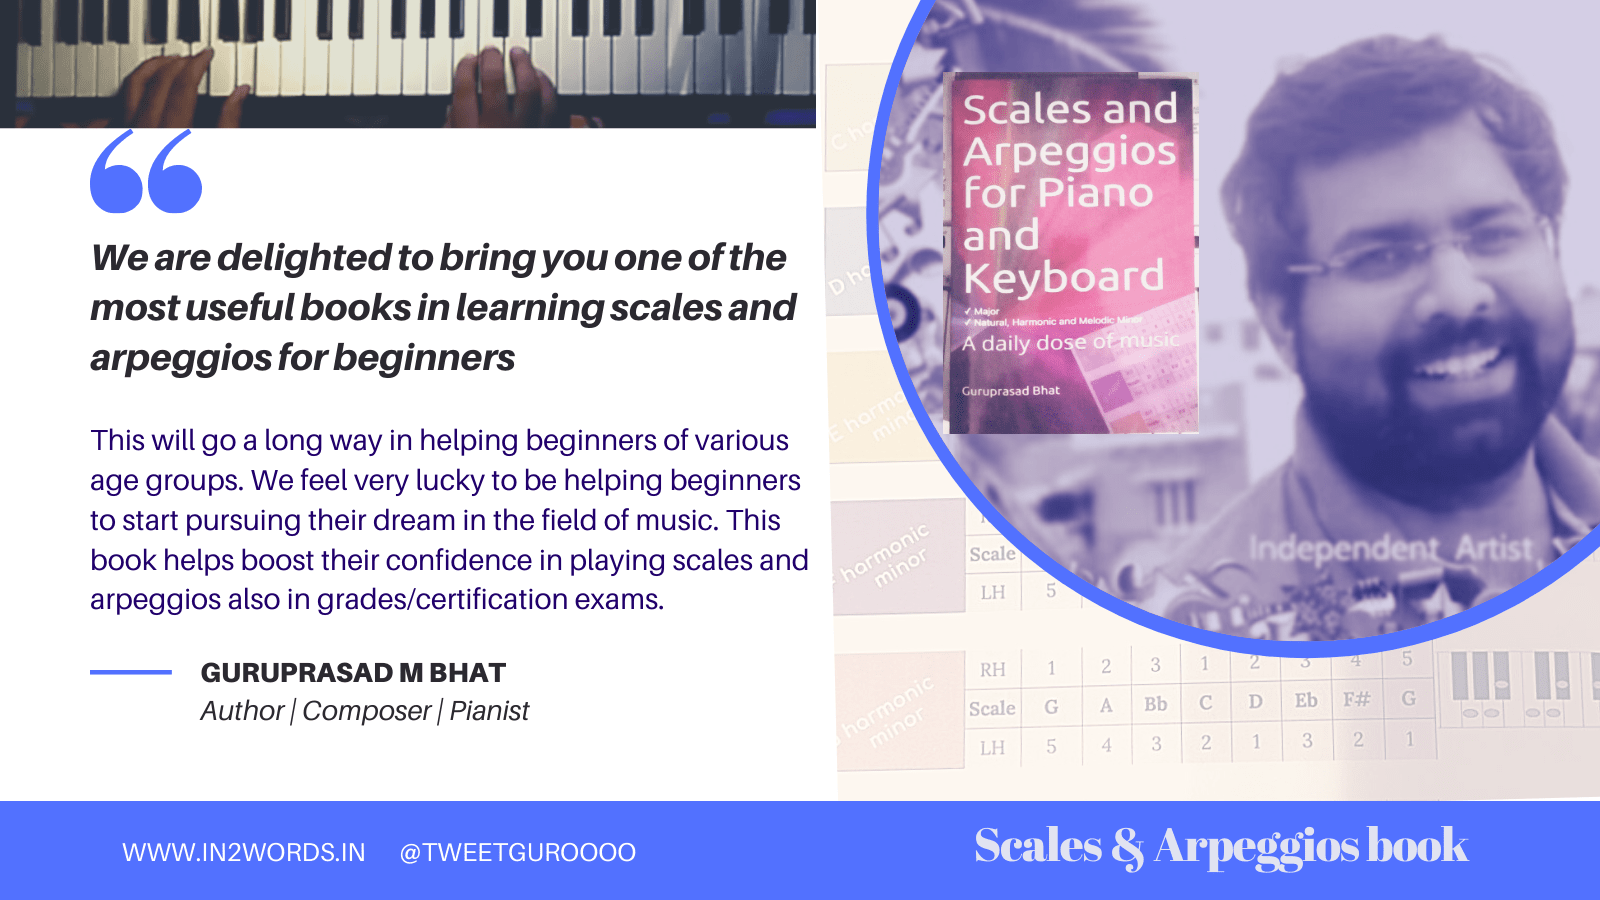 Scales and arpeggios book for piano and keyboard